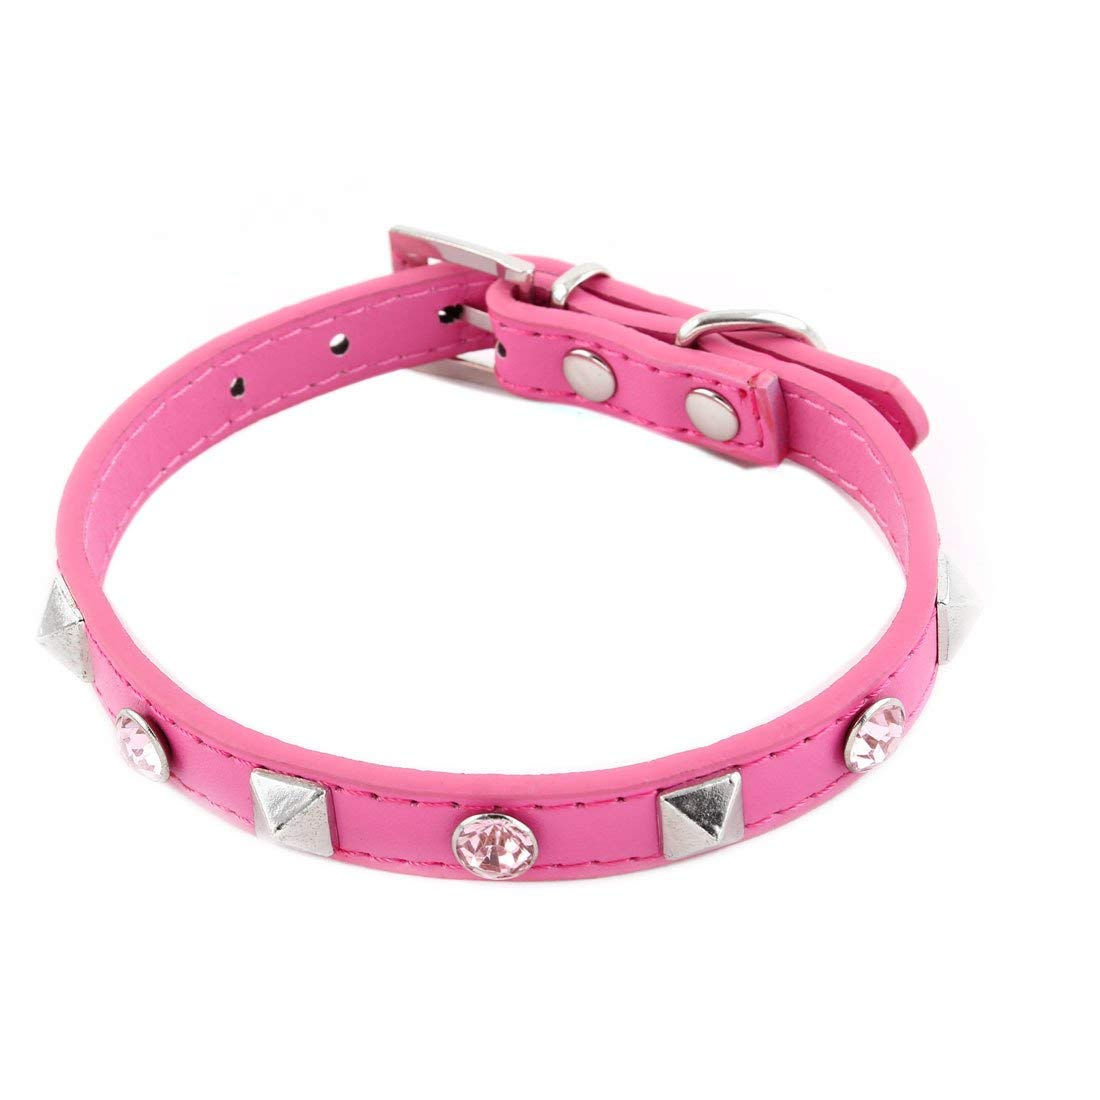 Faux Leather Faux Rhinestone Decor Buckle Adjustable Pet Dog Neck Collar Fuchsia